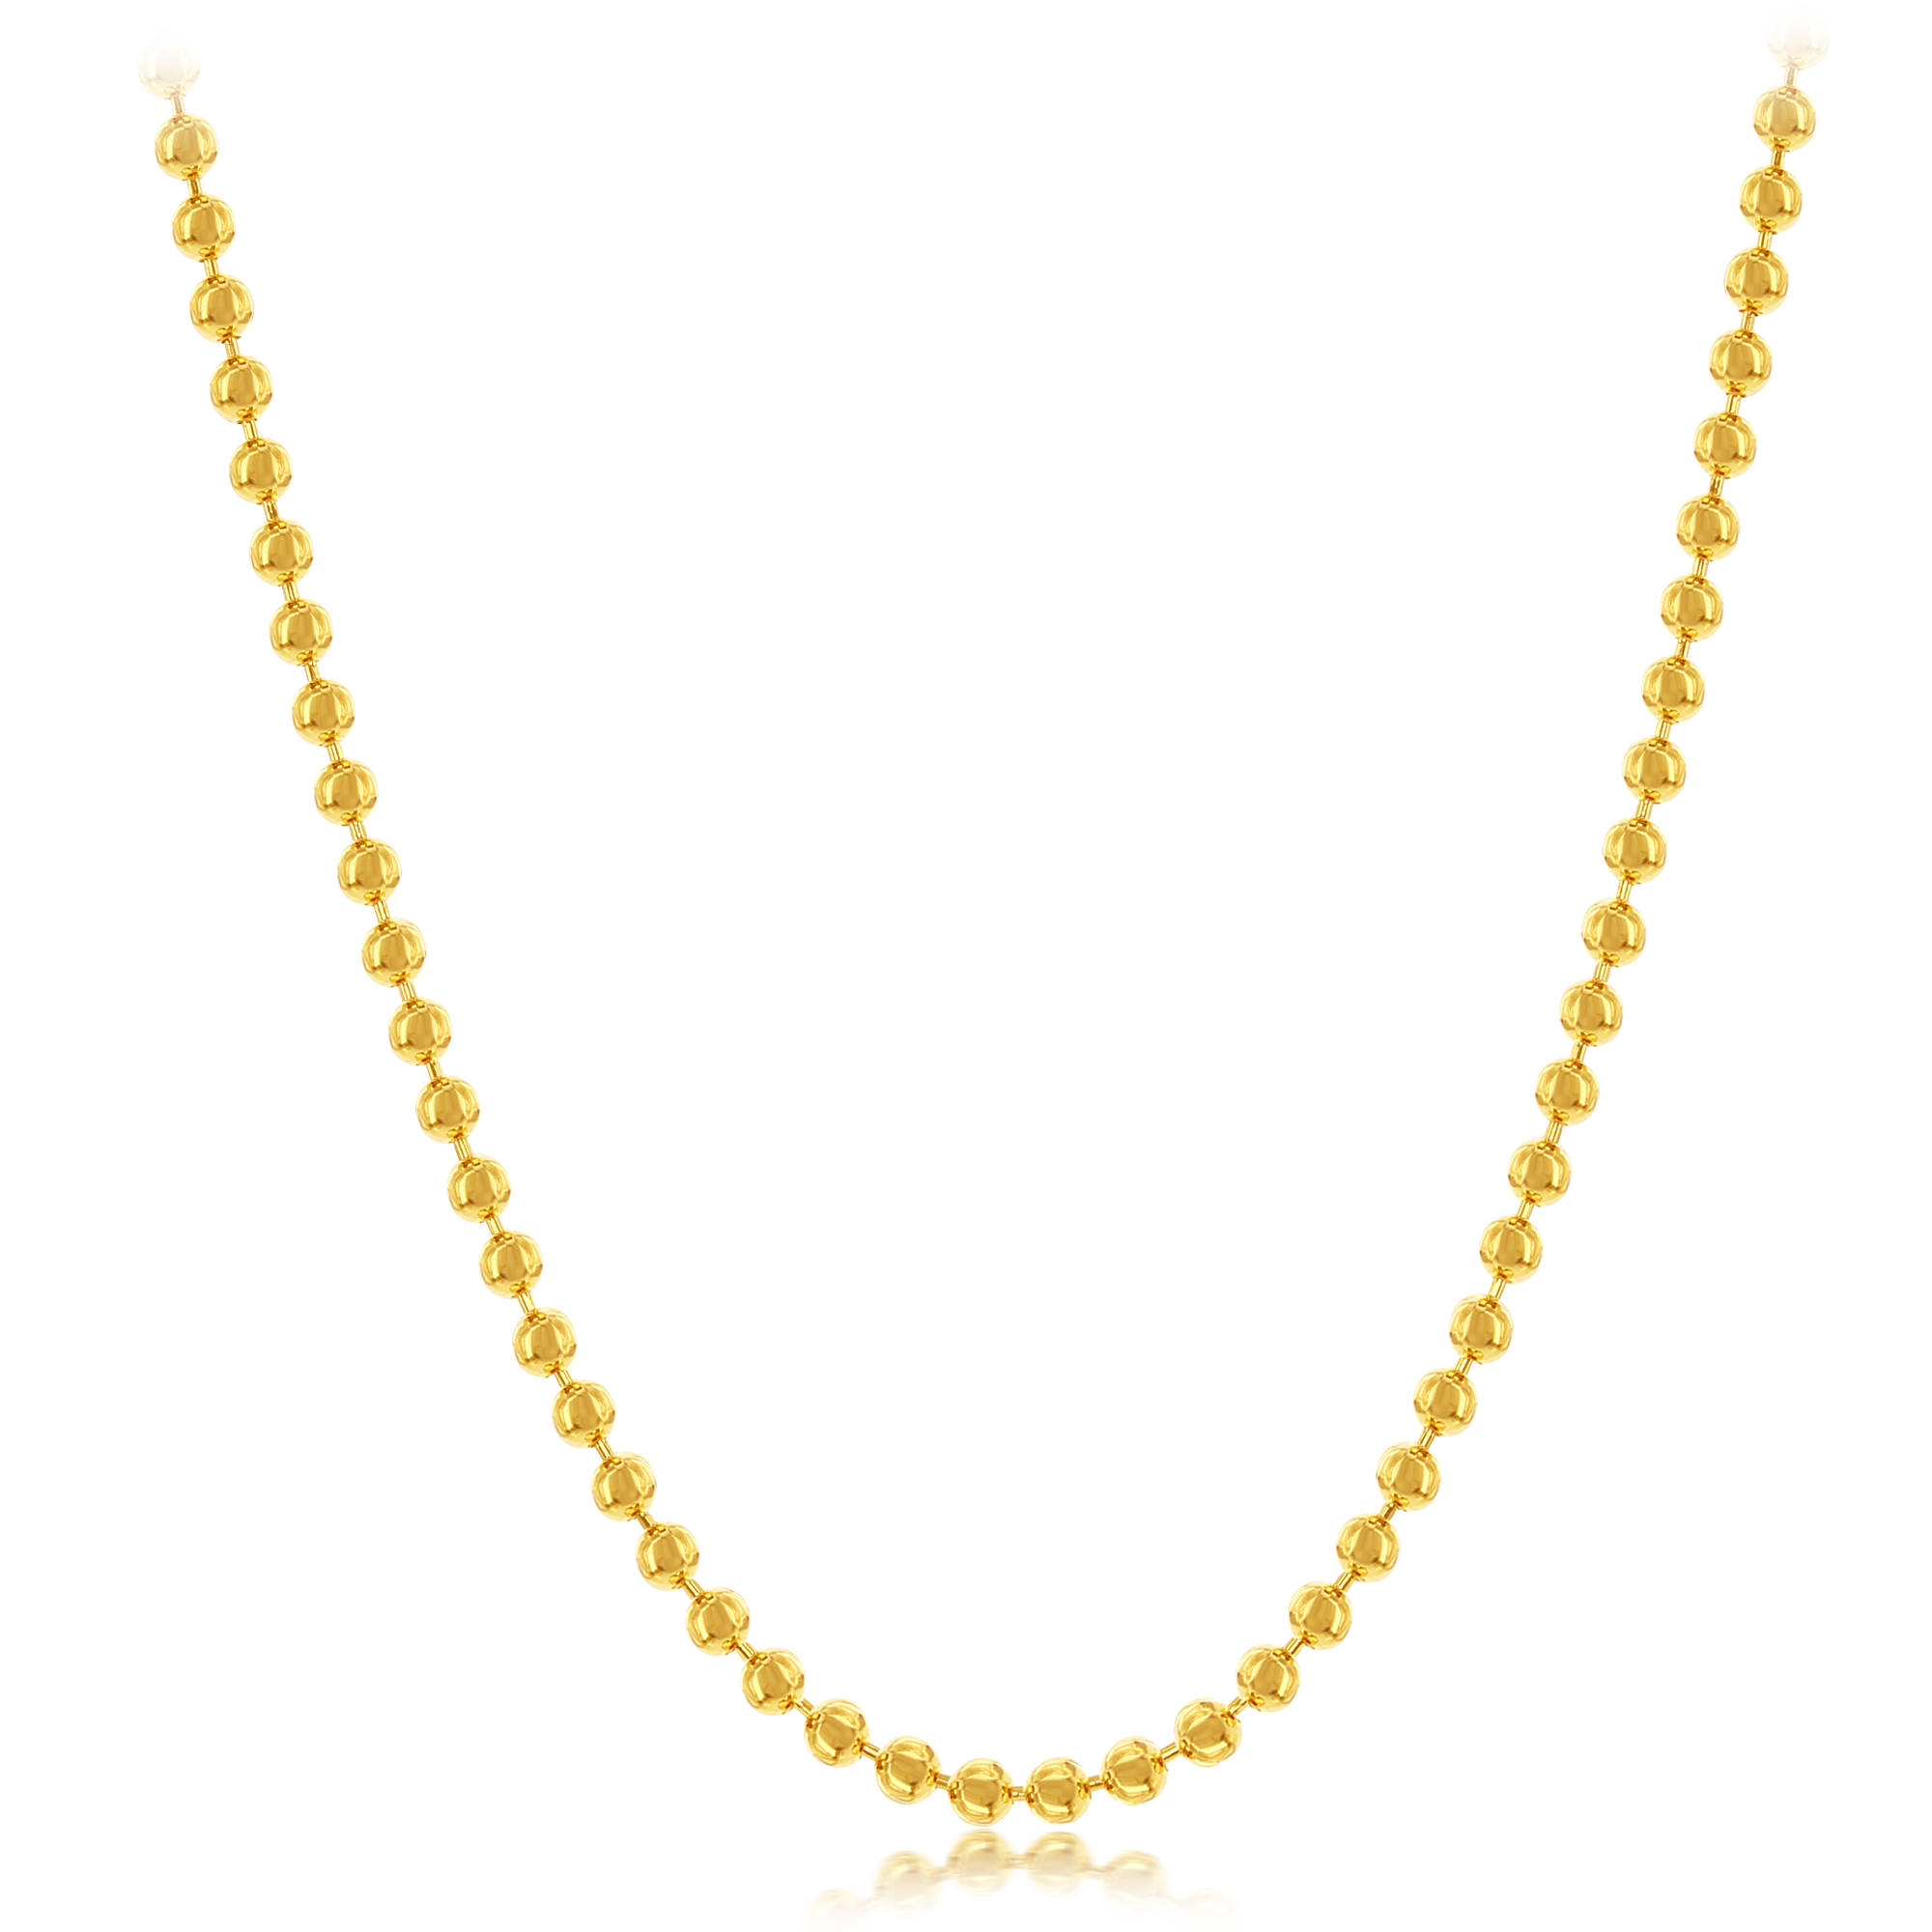 Our Gold Plated Sterling Silver Bead Chain can be worn by itself or